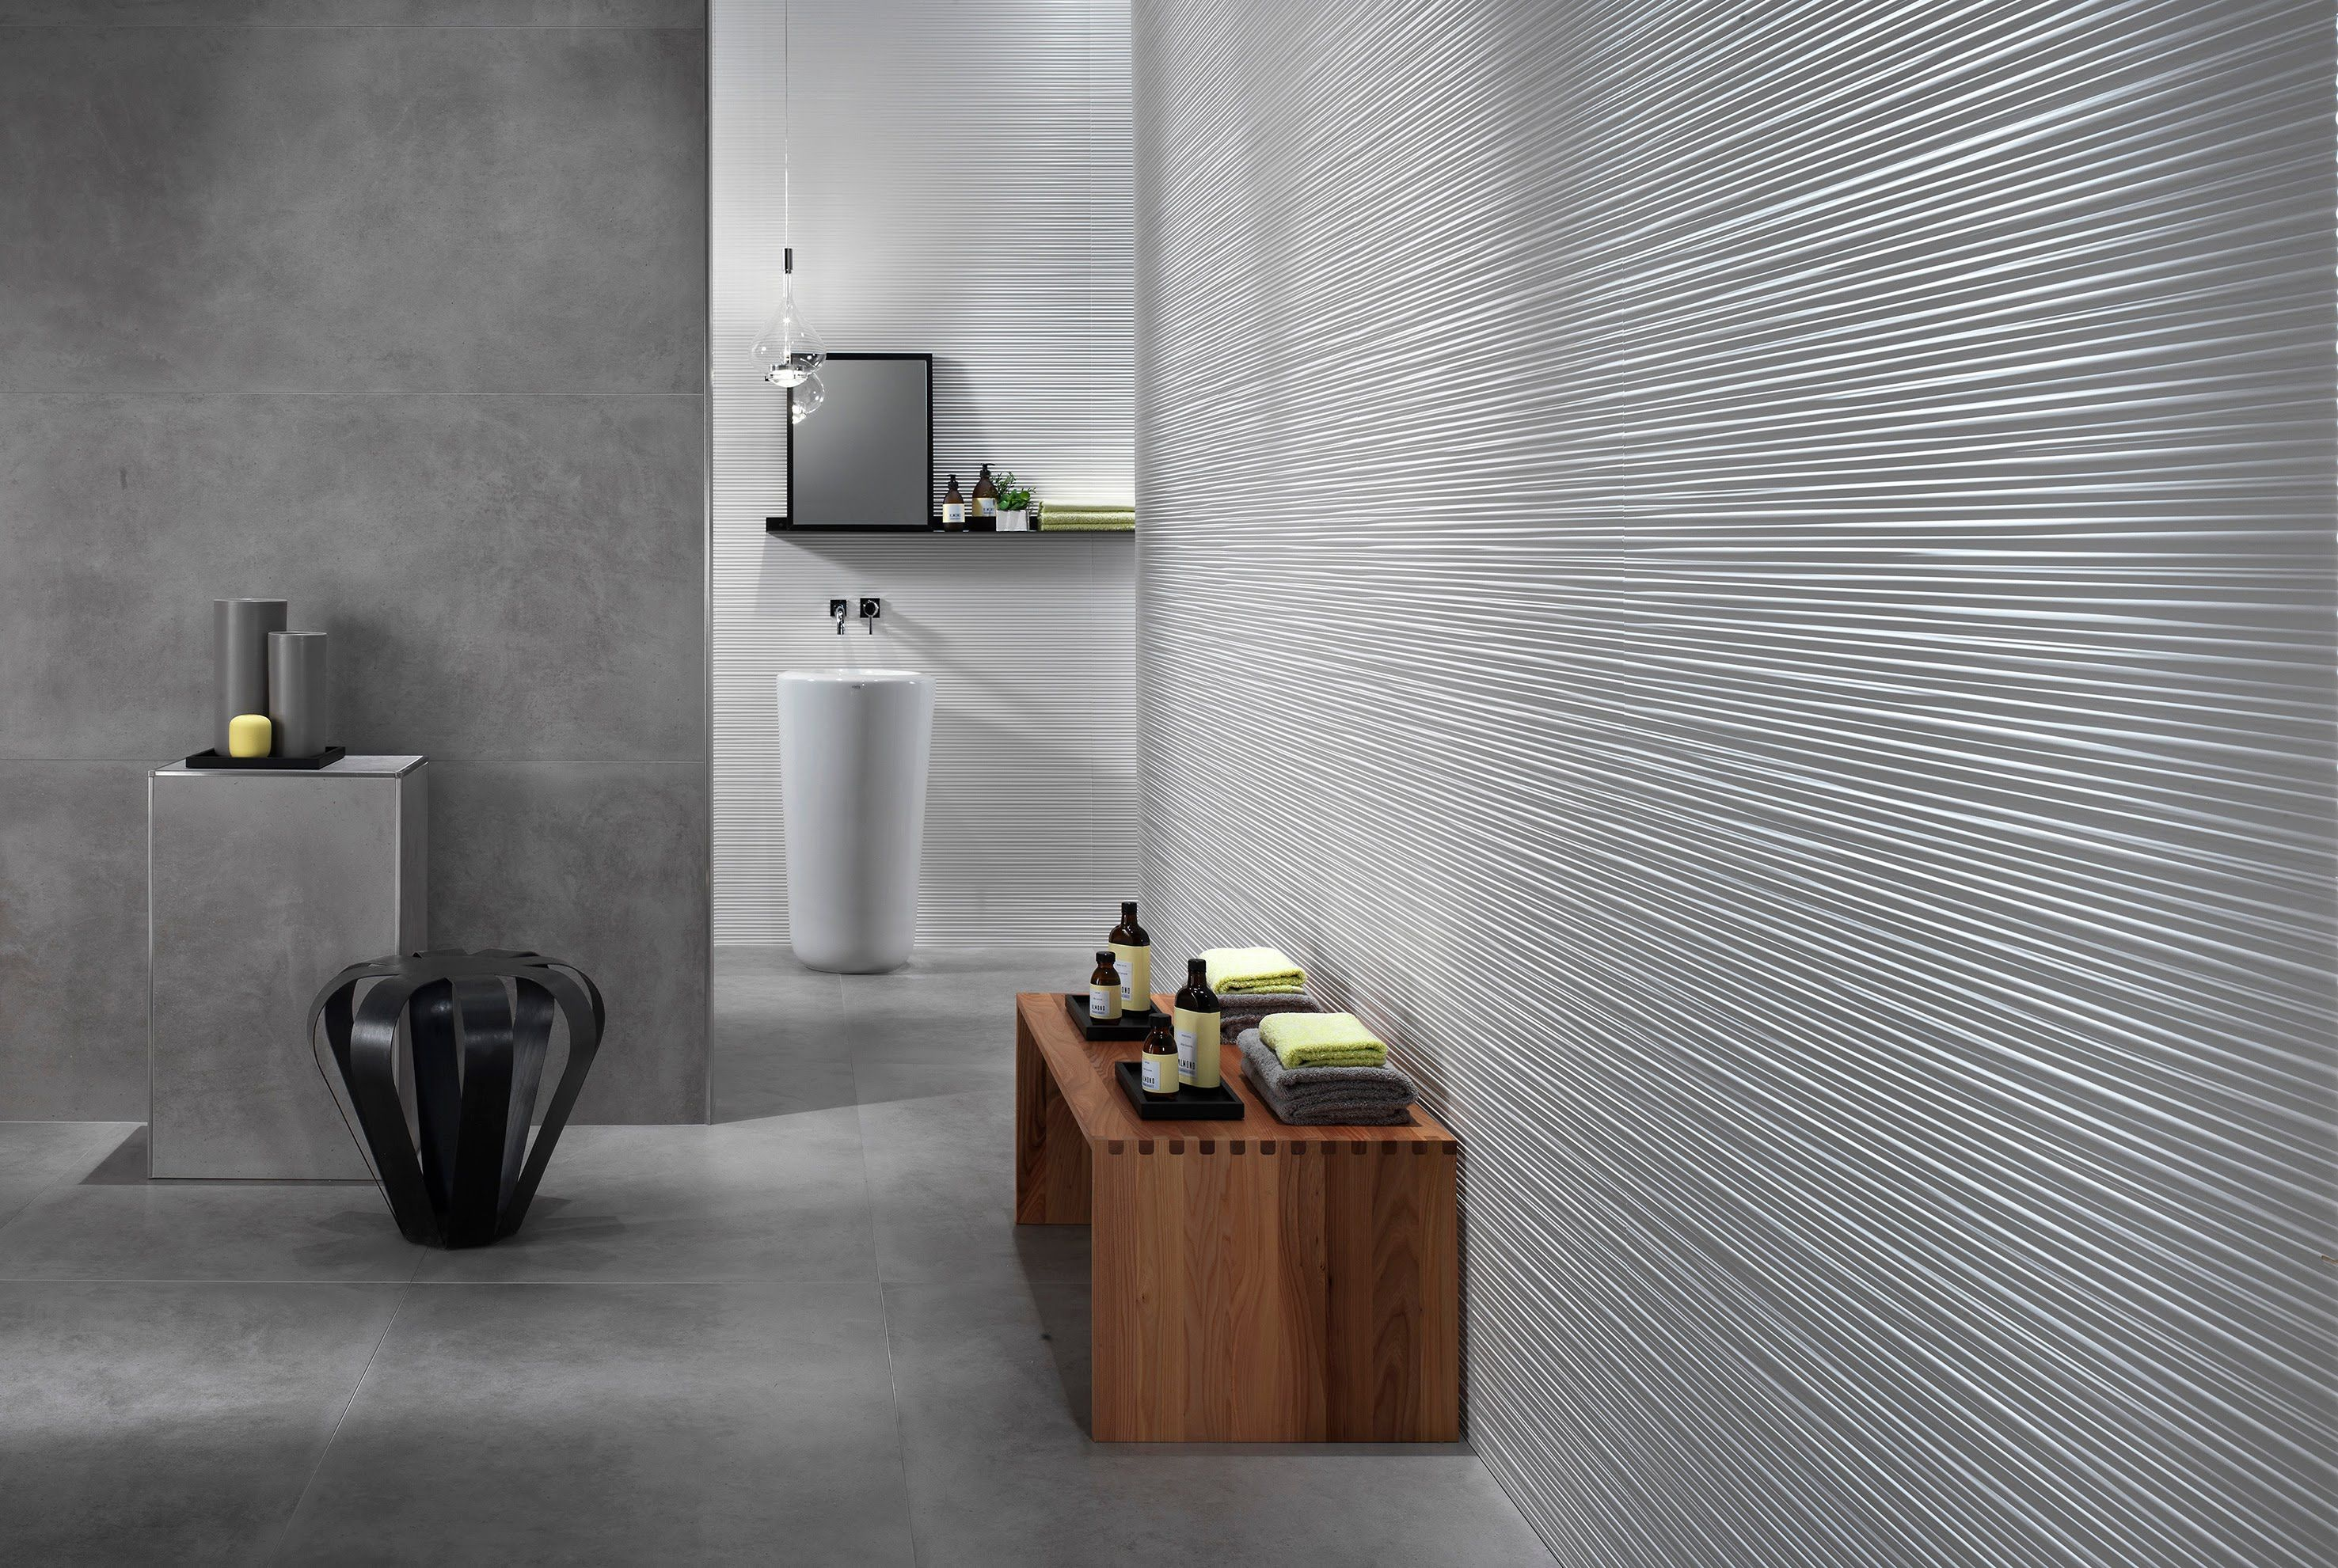 3d Wall Design Line Continous And Defined Lines To Plan Feature Walls Wall Cladding Wall Design Indoor Tile